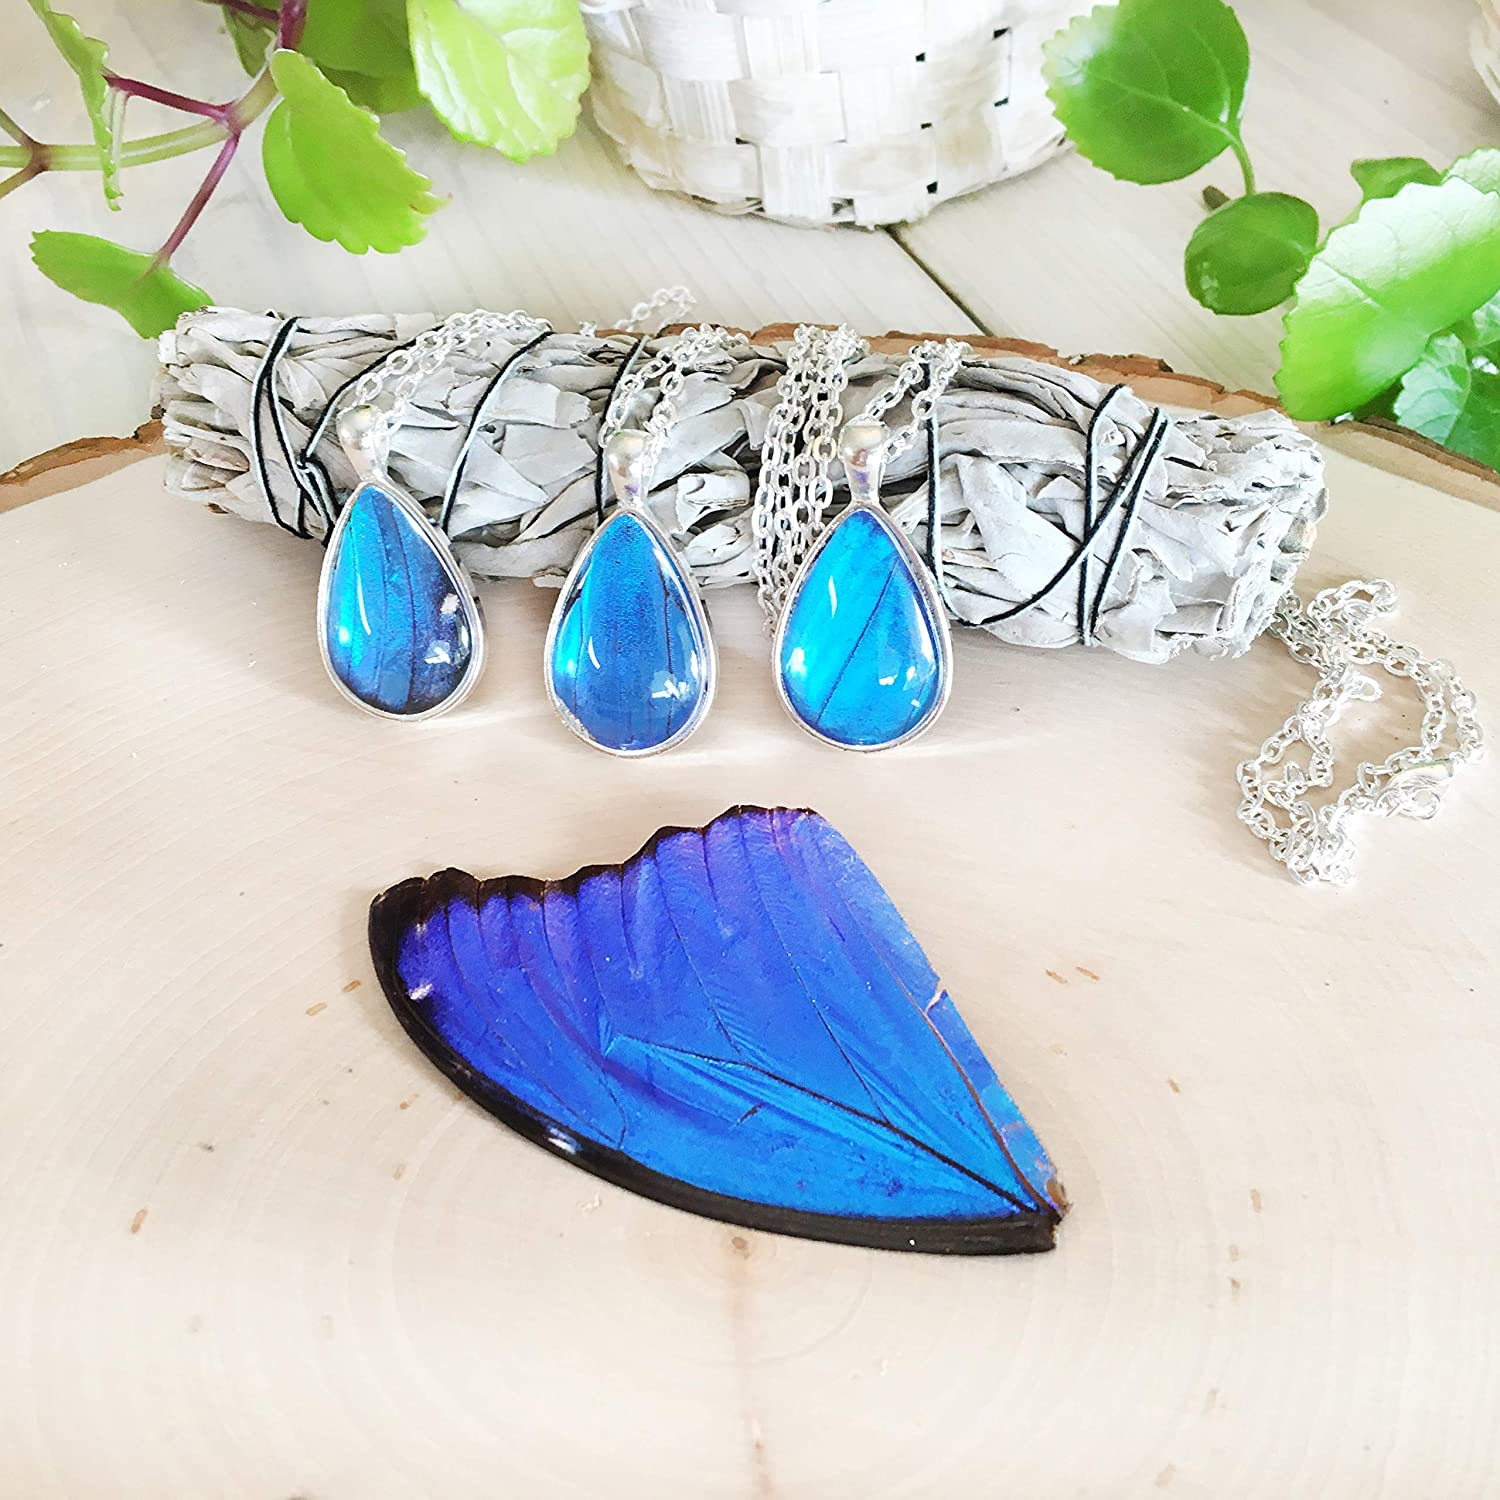 BLUE MORPHO Butterfly Wing Pendant Butterfly Wing Jewelry AUTHENTIC Butterfly Wings Eco Friendly Jewelry Statement Jewelry